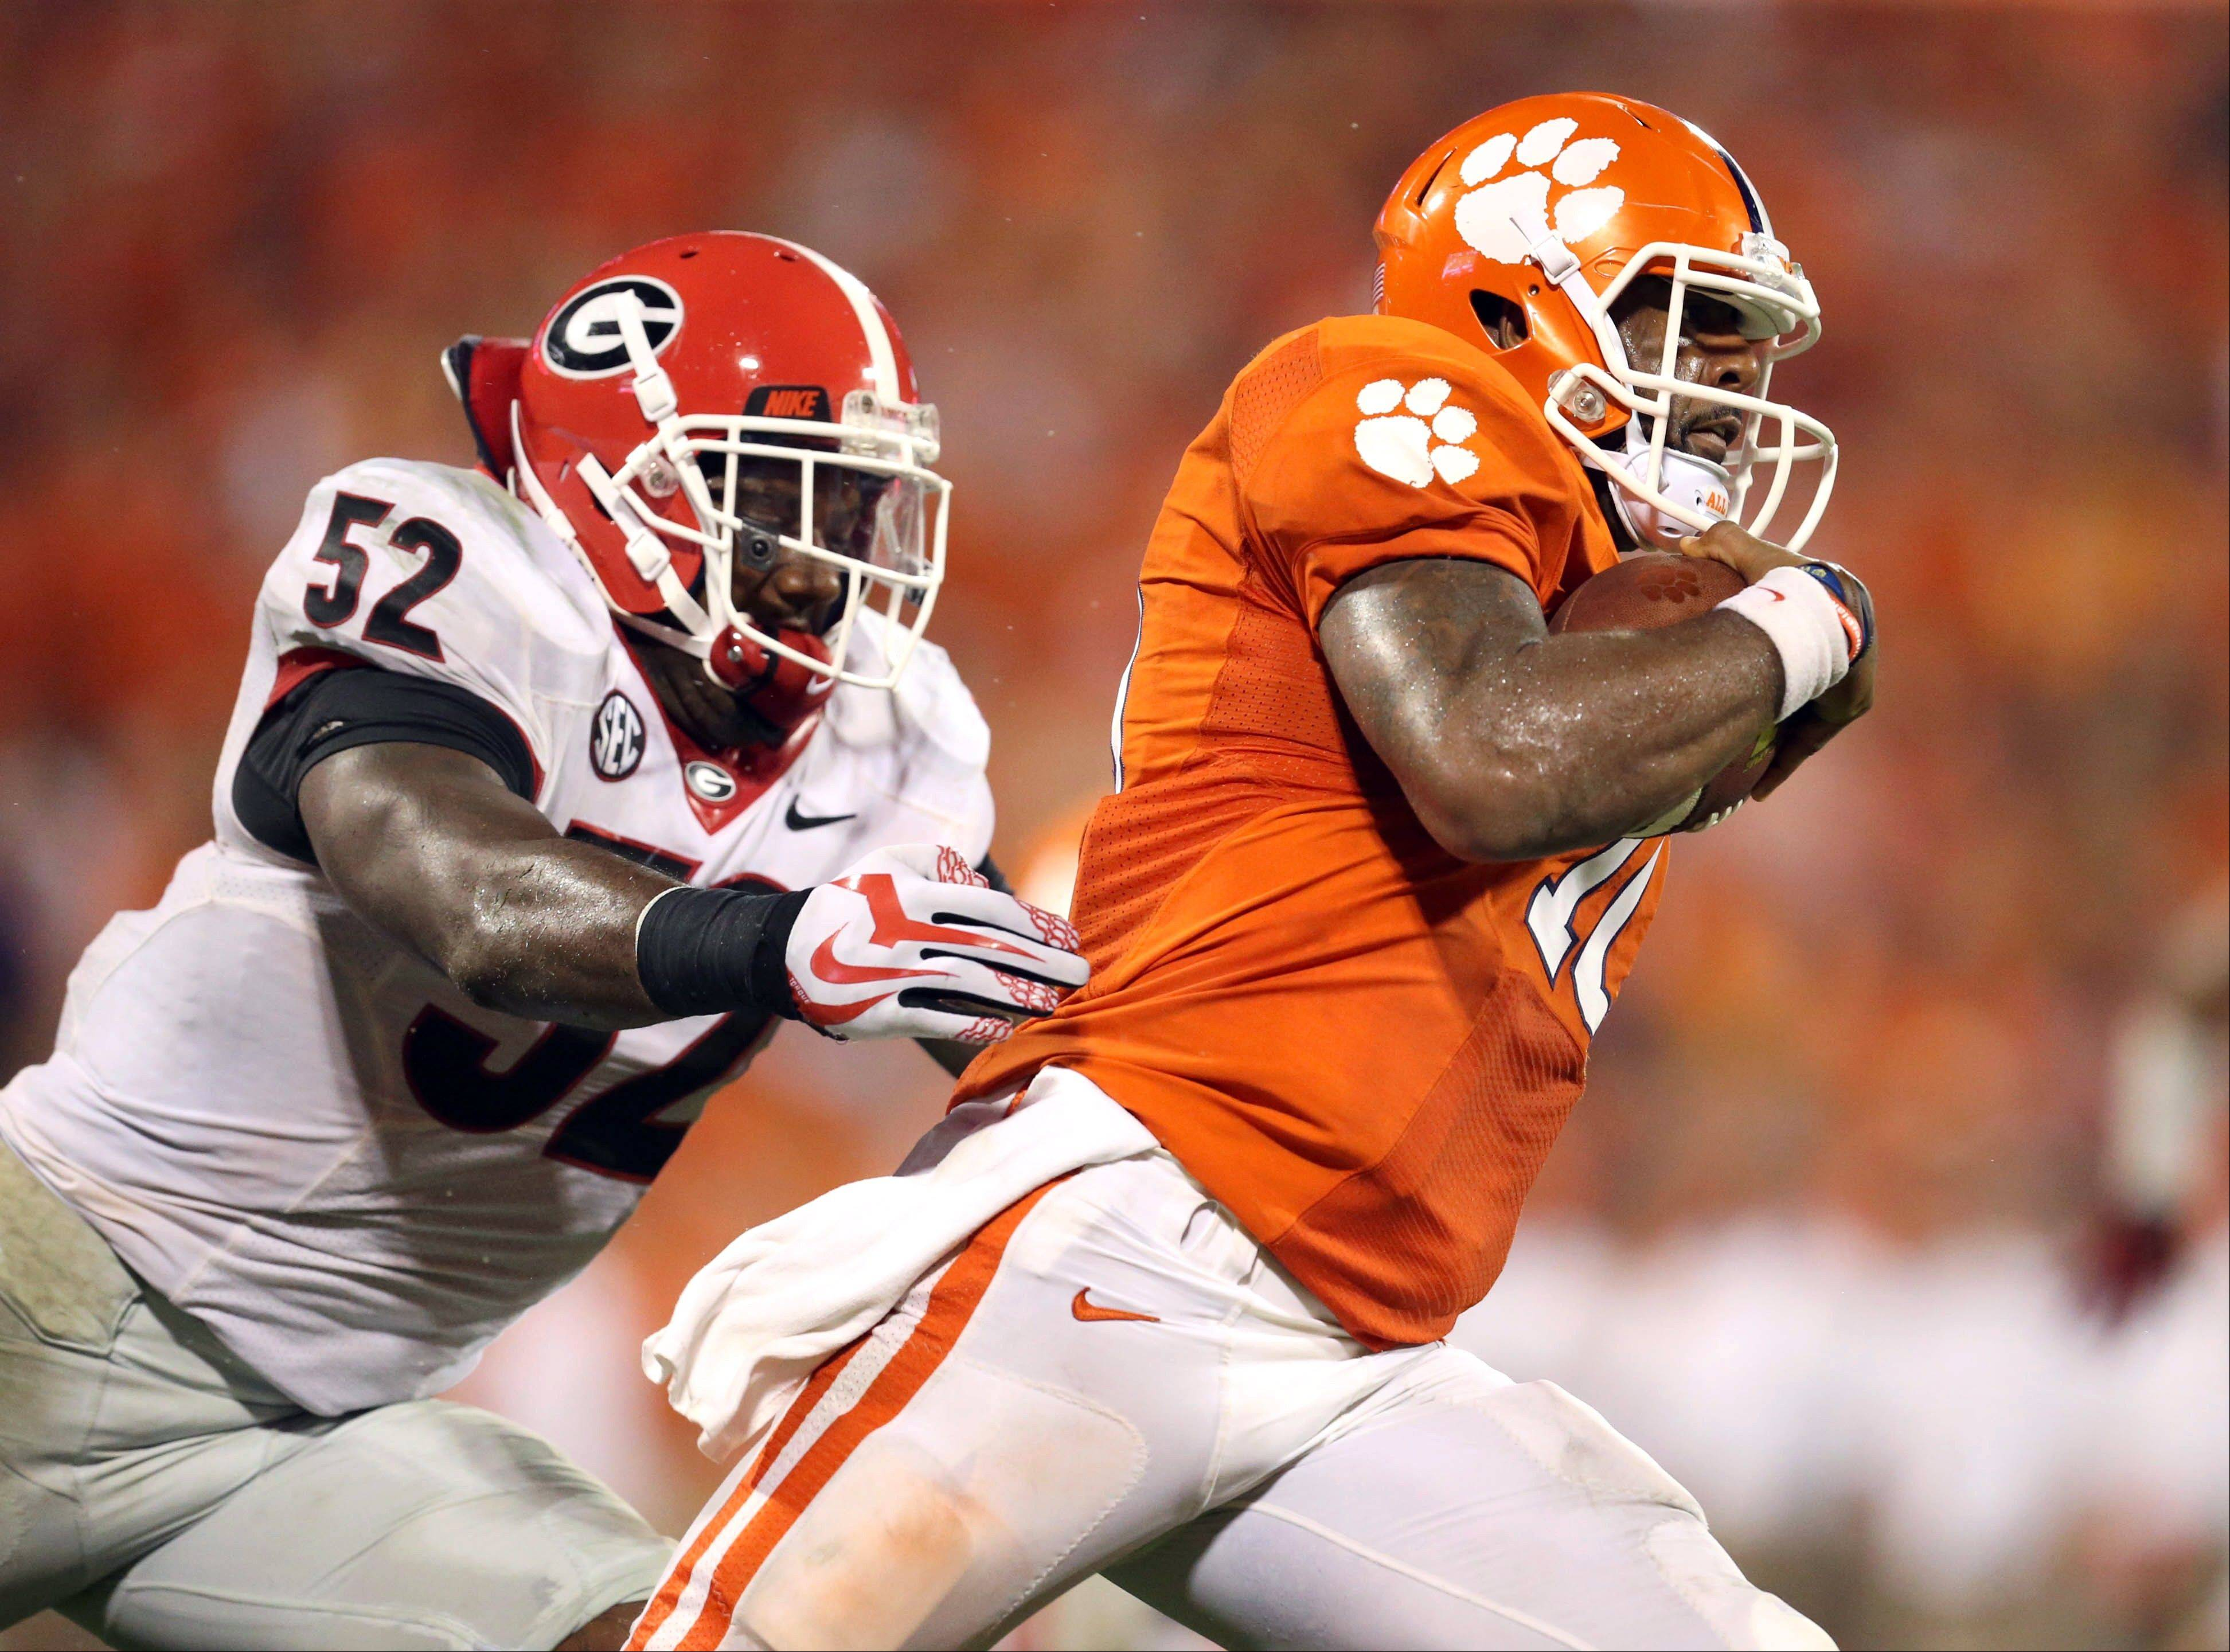 Clemson quarterback Tajh Boyd, right, outruns the tackle of Georgia linebacker Amarlo Herrera, left, Saturday in the second half at Memorial Stadium in Clemson, S.C. Clemson defeated Georgia 38-35.